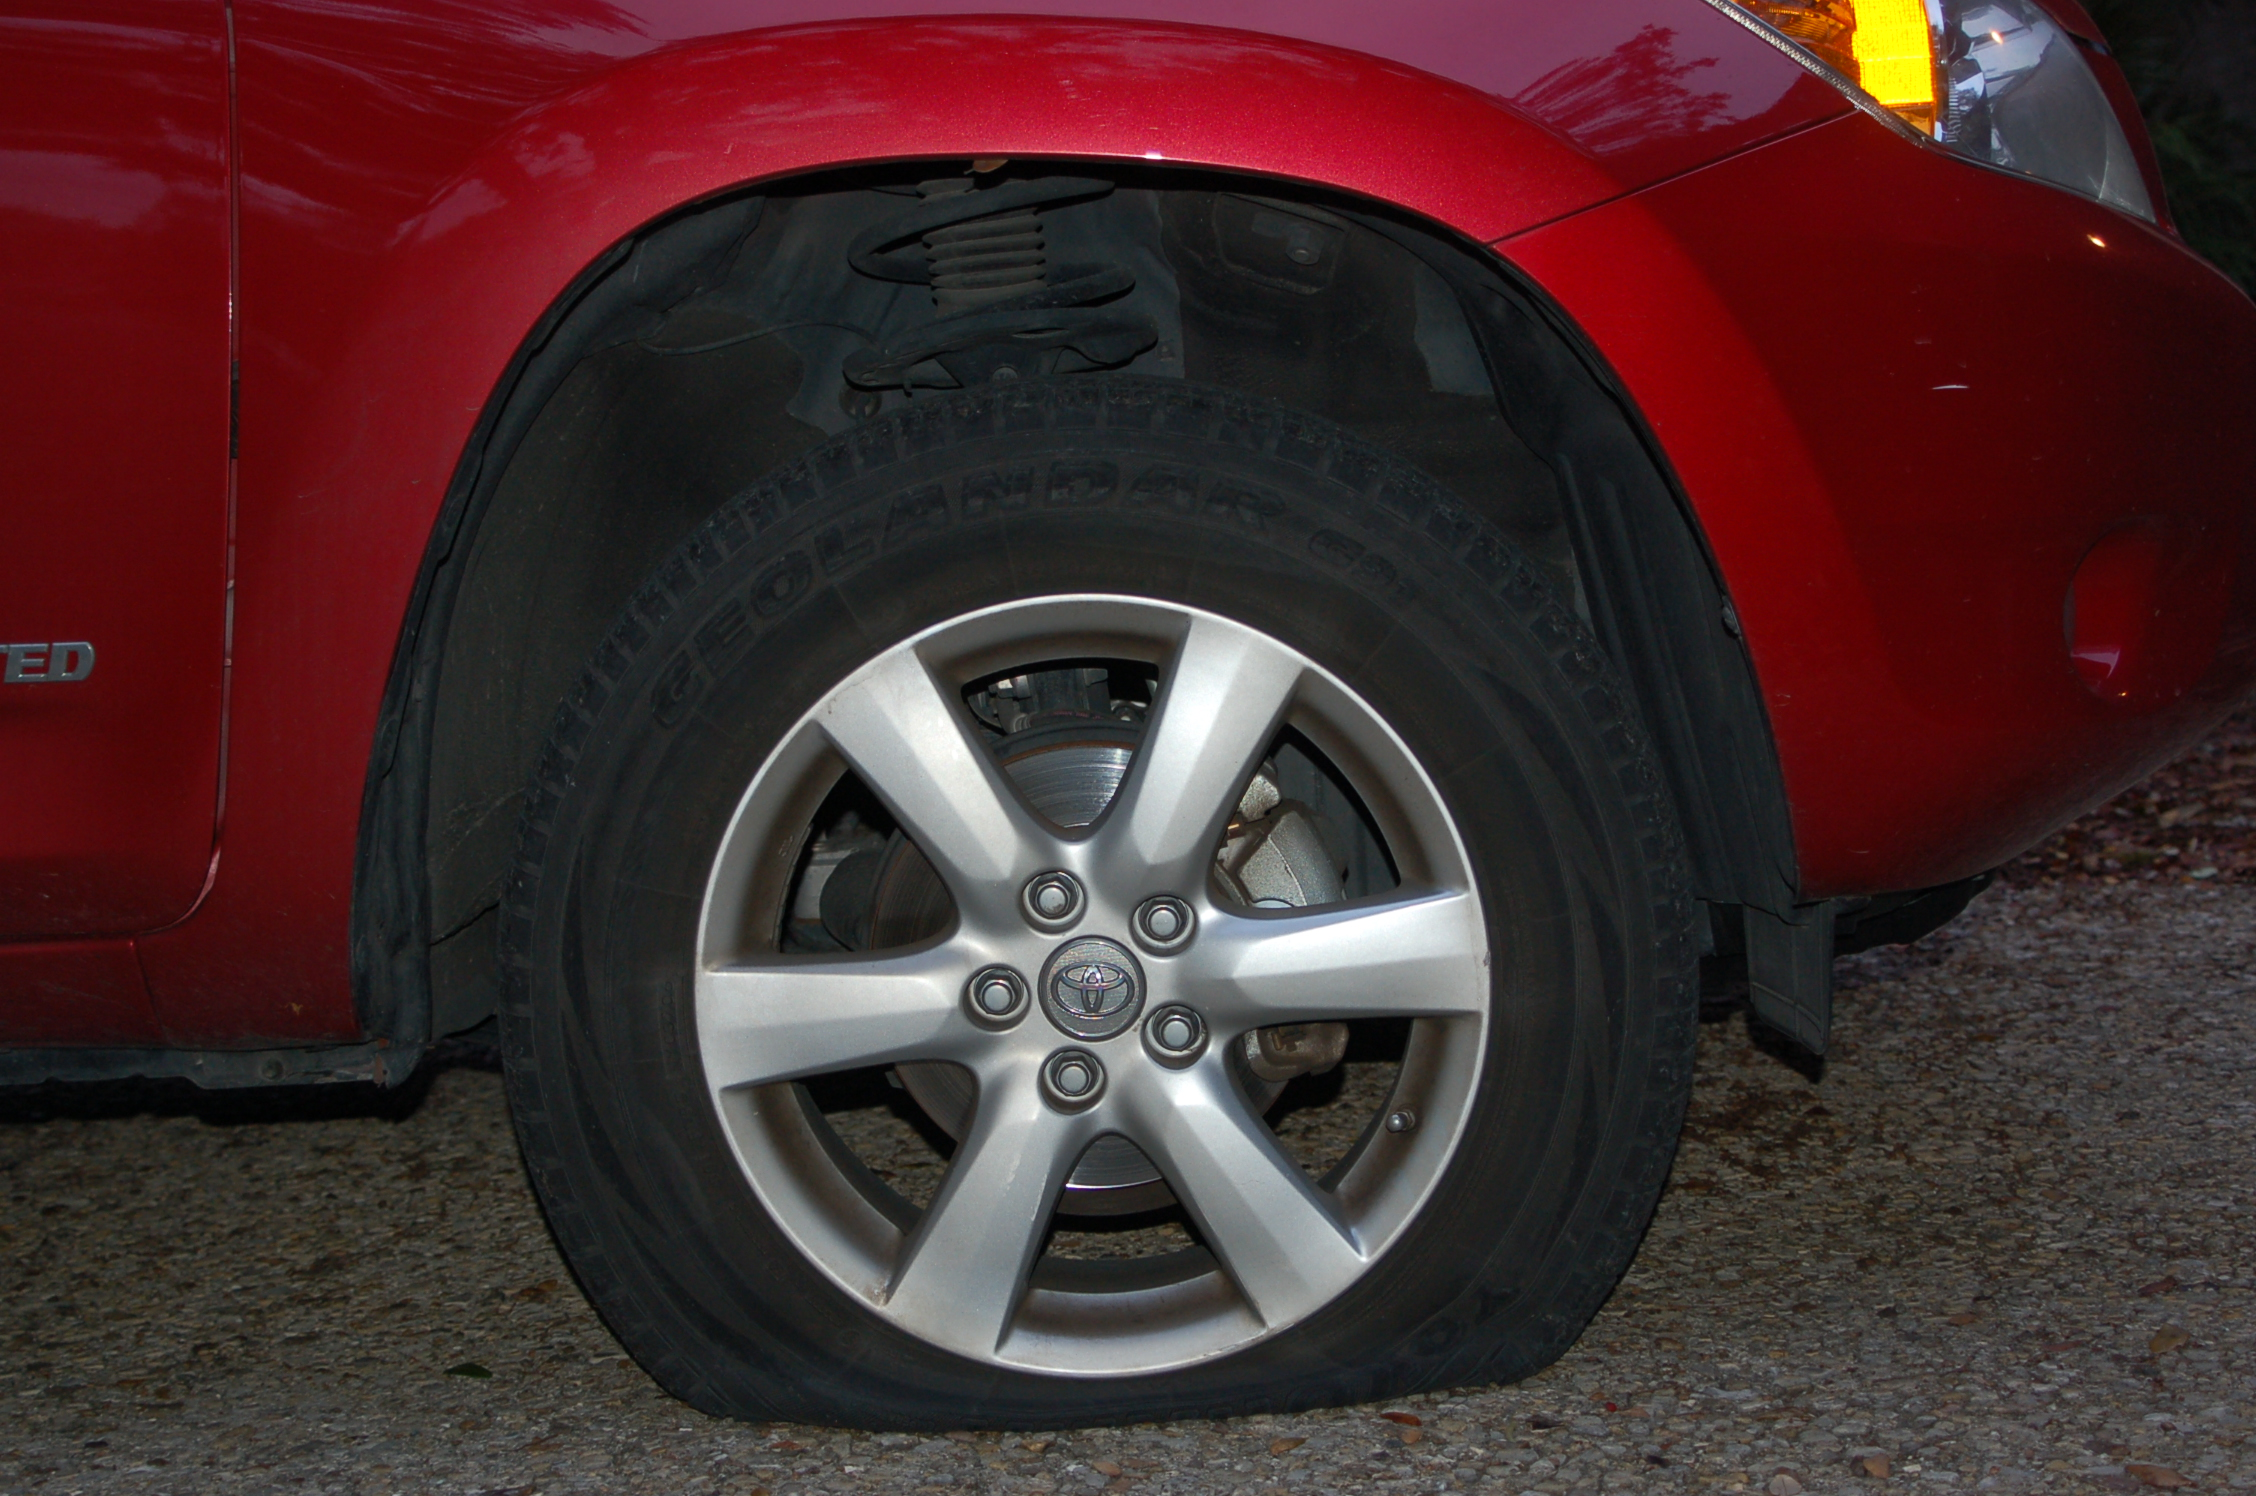 Car Tire Locks Up While Driving